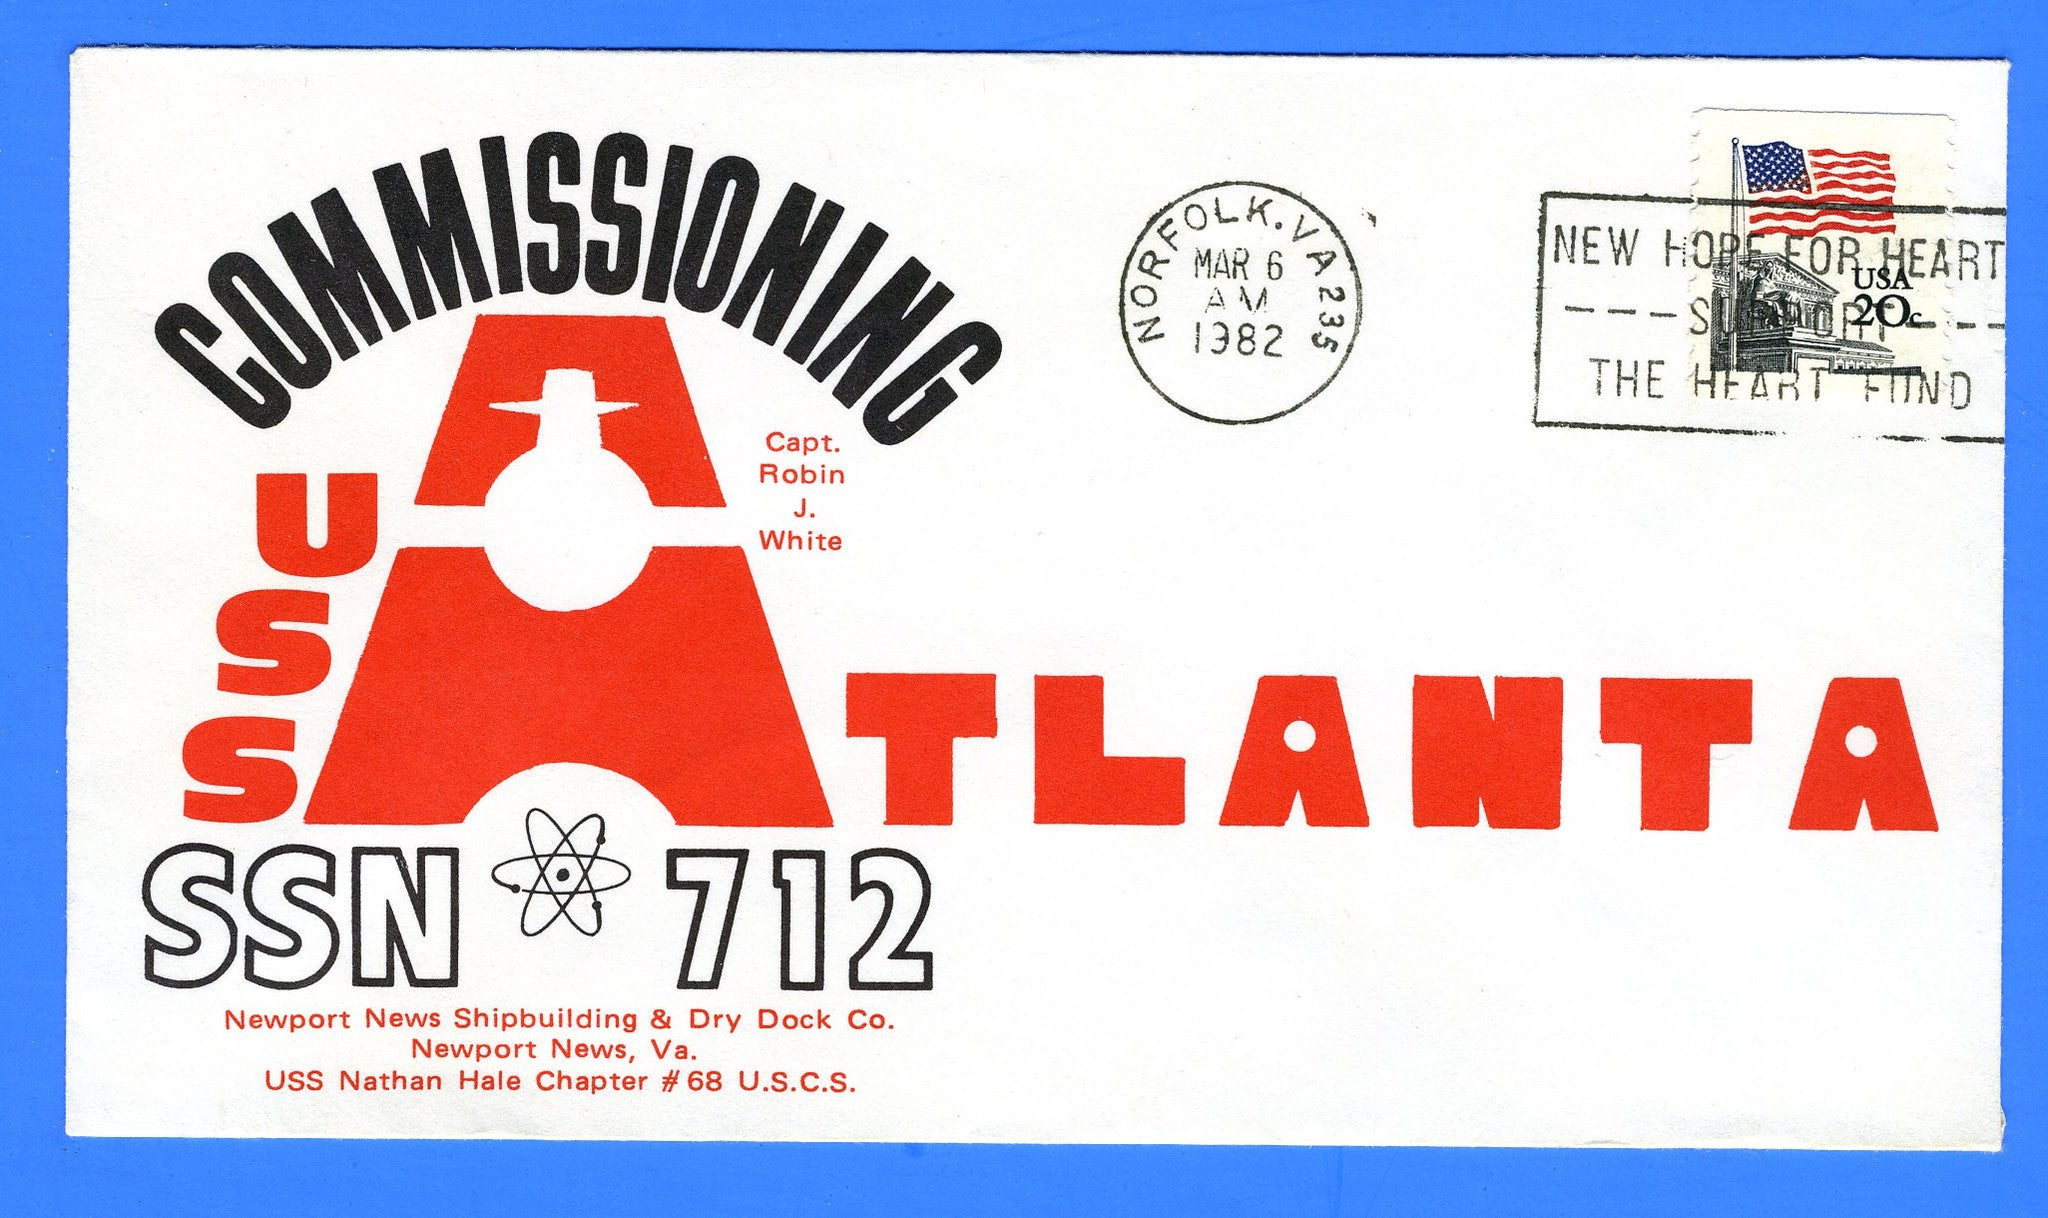 USS Atlanta SSN-712 Commissioning March 6, 1982